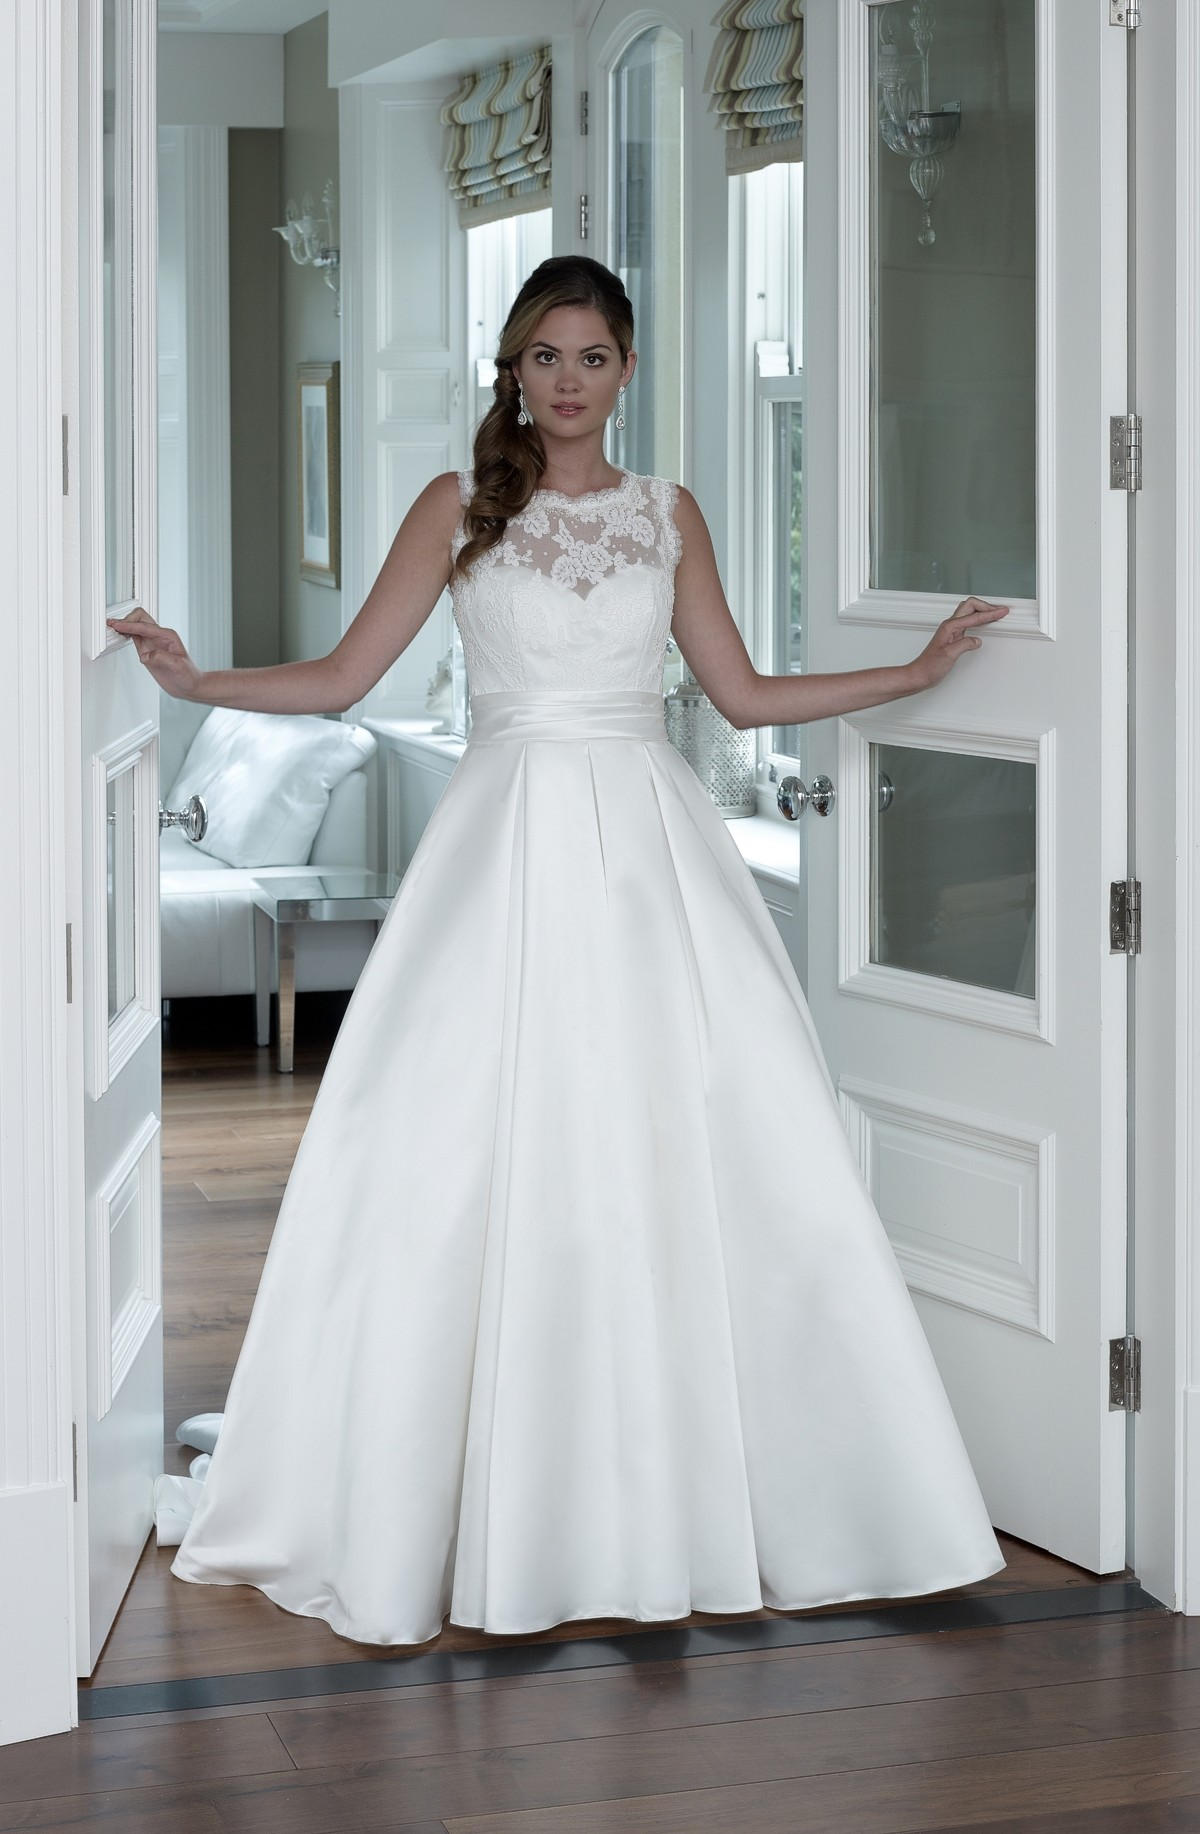 Wedding Dress Sale Clearance Prices Discount Bridal Shop Designers ...